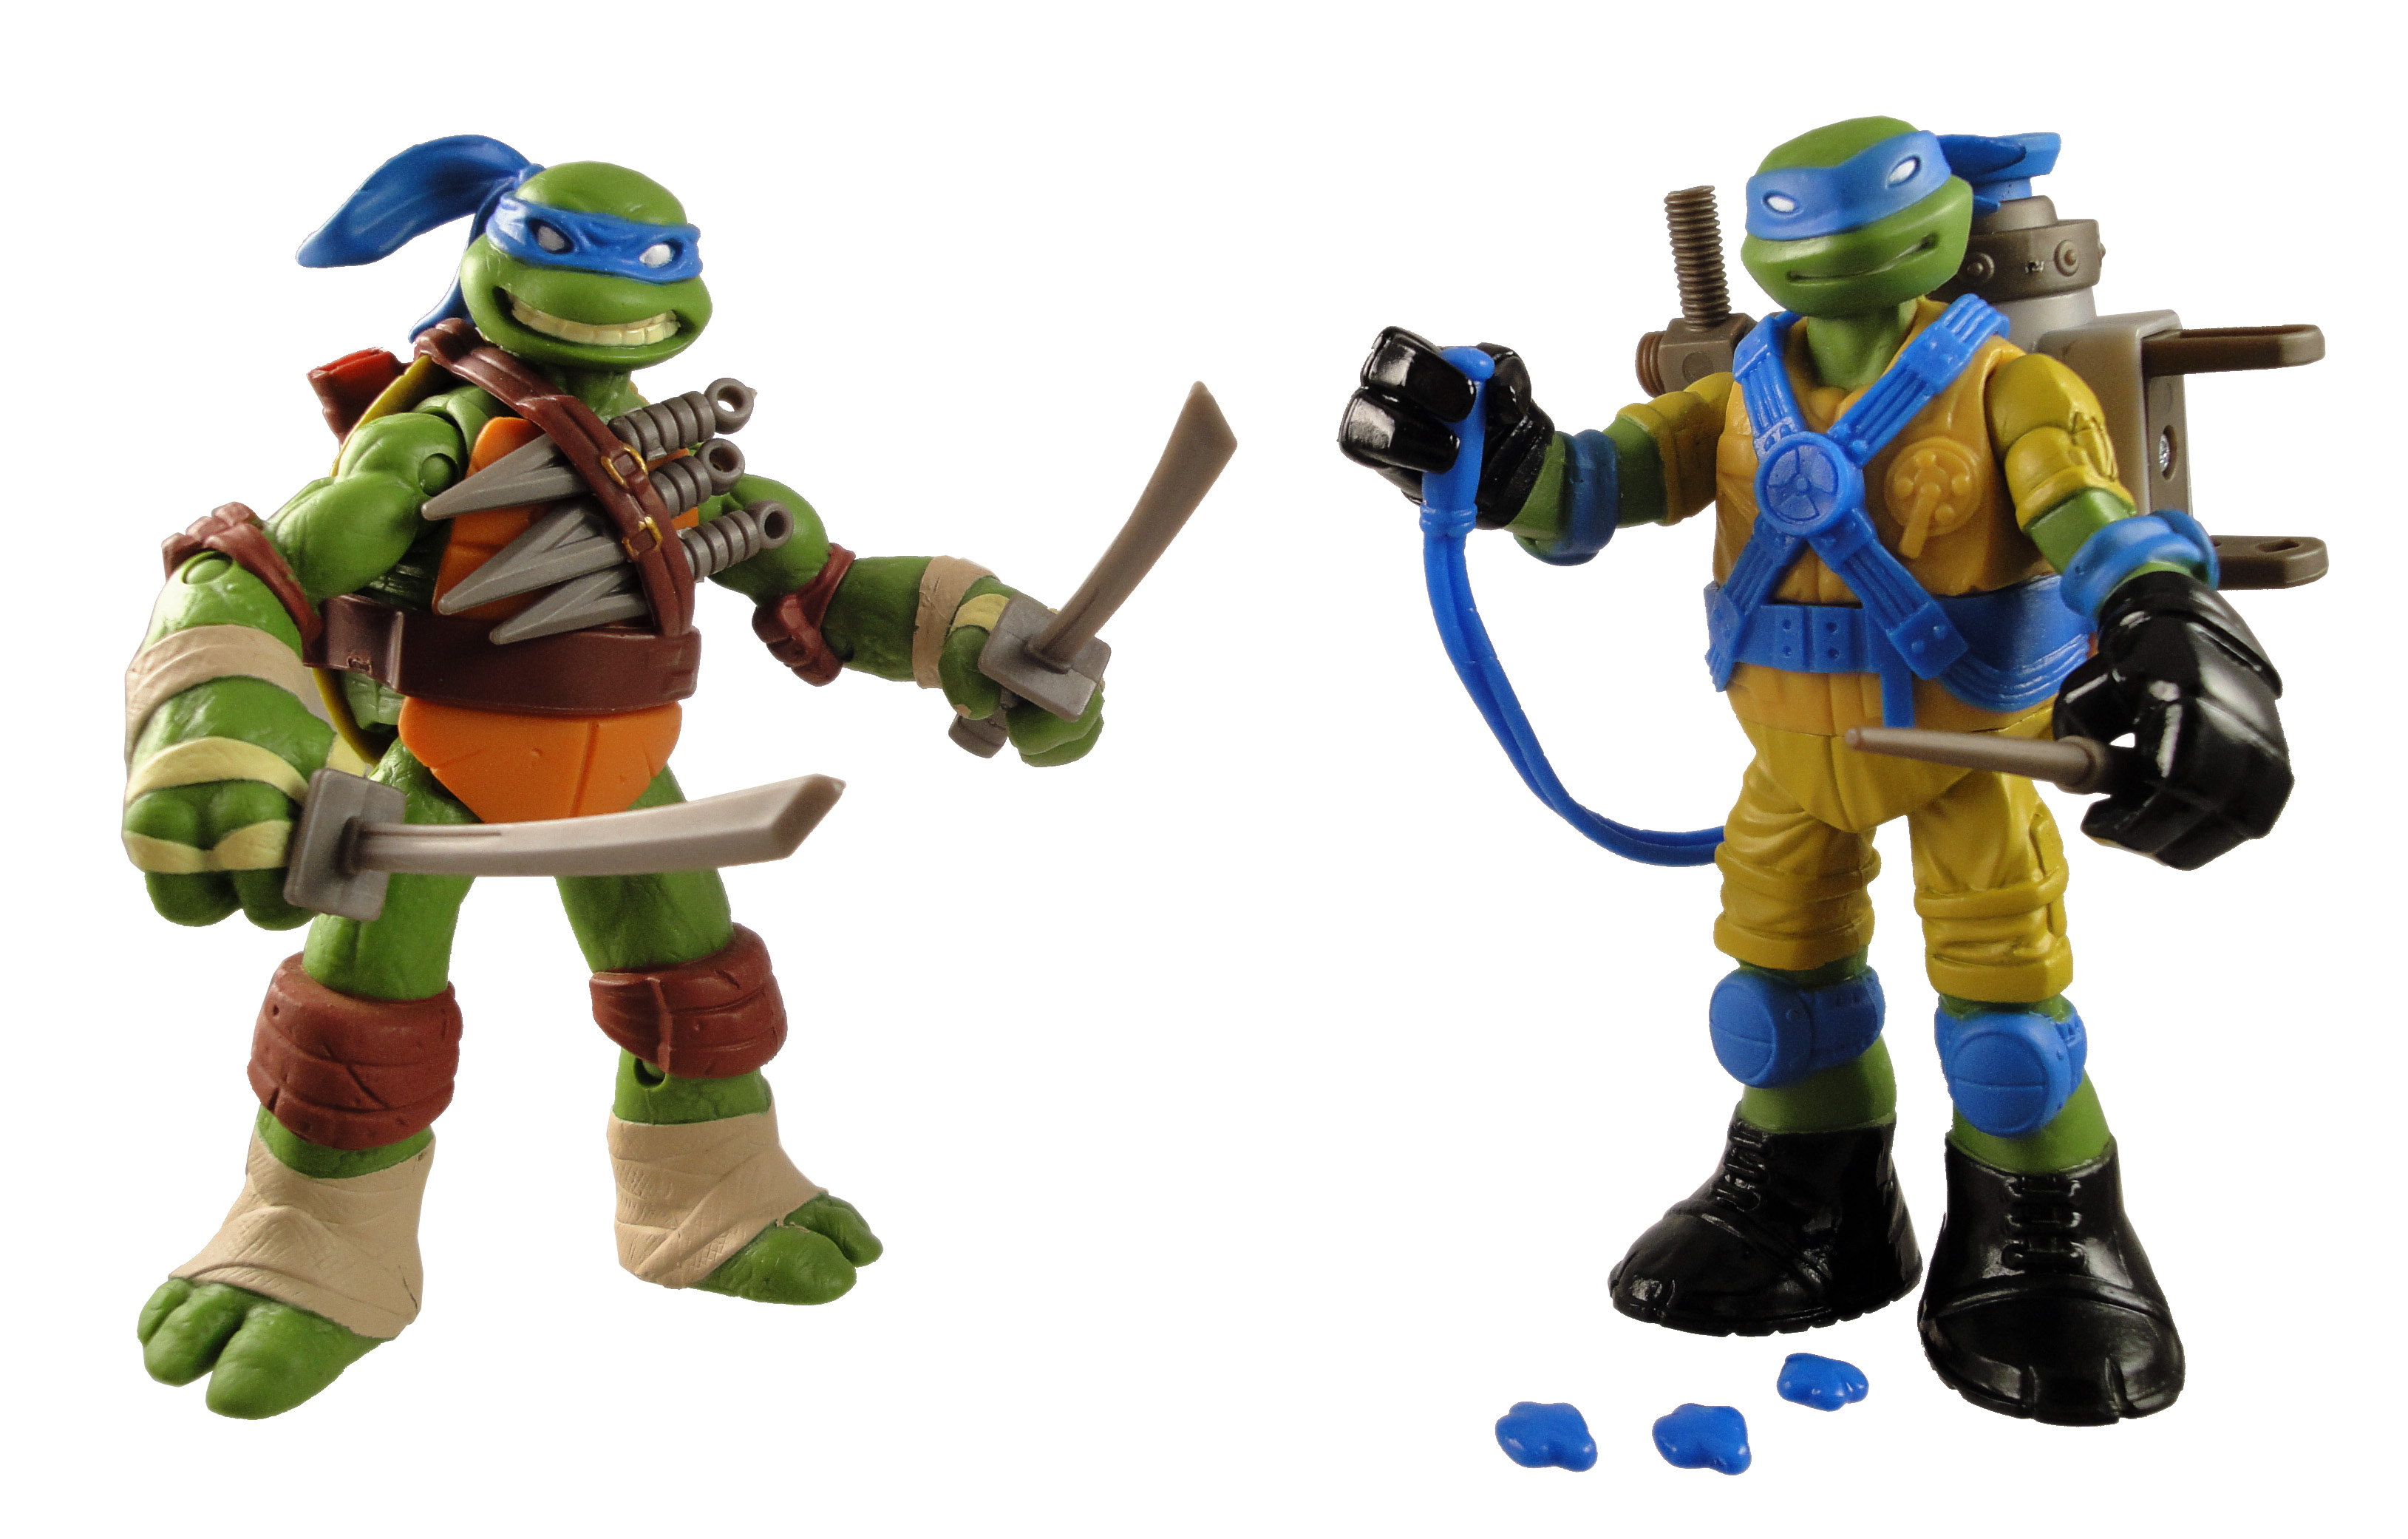 Ninja Turtles Toys : Review teenage mutant ninja turtles ooze launchin leo